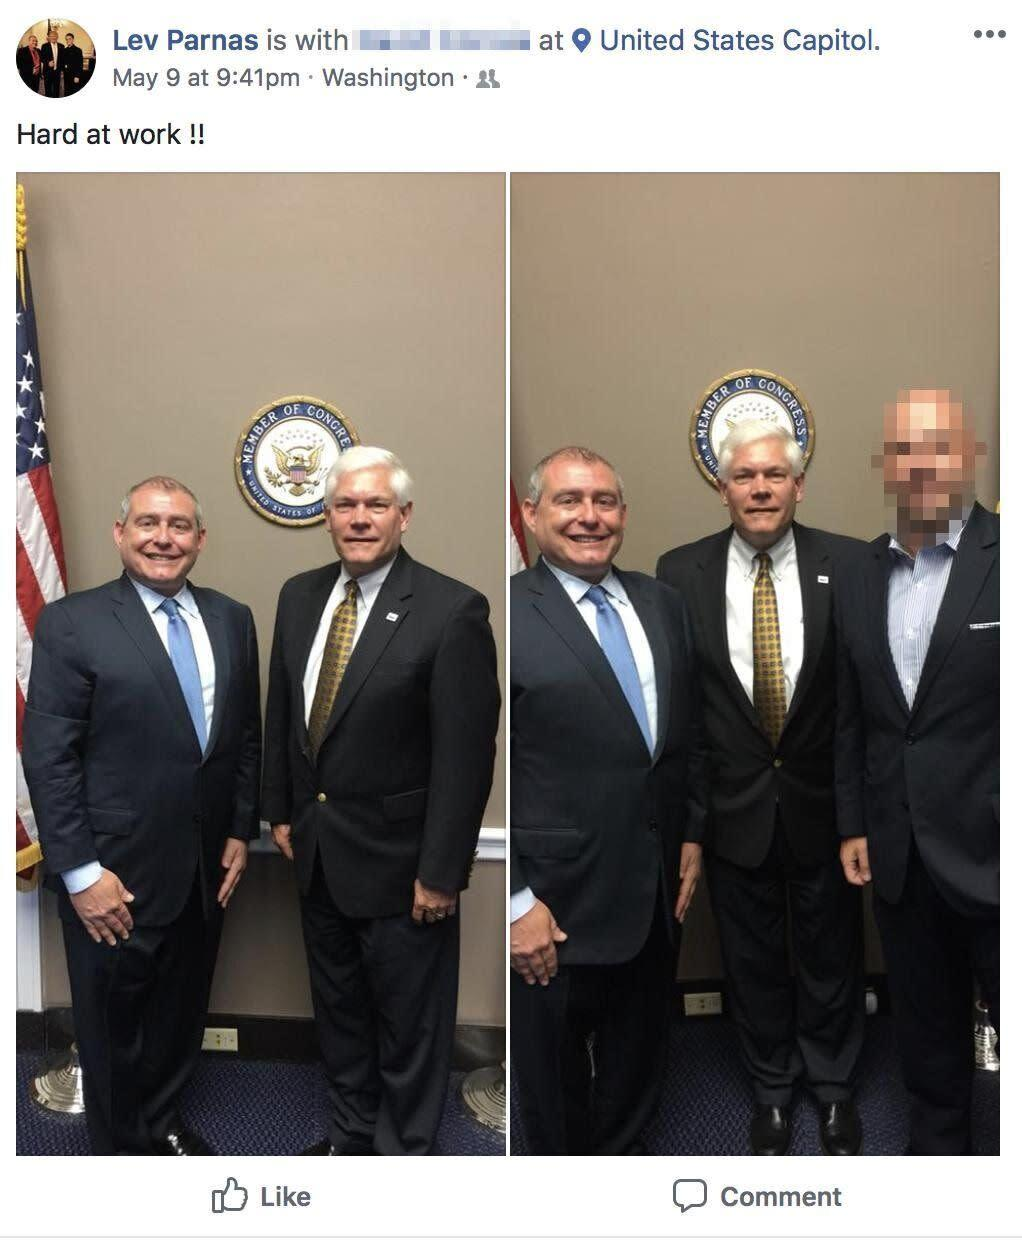 """Lev Parnas meets with then-Rep. Pete Sessions (R-Texas) in May 2018. (Photo: <a href=""""https://www.occrp.org/en/investigations/meet-the-florida-duo-helping-giuliani-dig-dirt-for-trump-in-ukraine"""" rel=""""nofollow noopener"""" target=""""_blank"""" data-ylk=""""slk:Organized Crime and Corruption Reporting Project"""" class=""""link rapid-noclick-resp"""">Organized Crime and Corruption Reporting Project</a>)"""